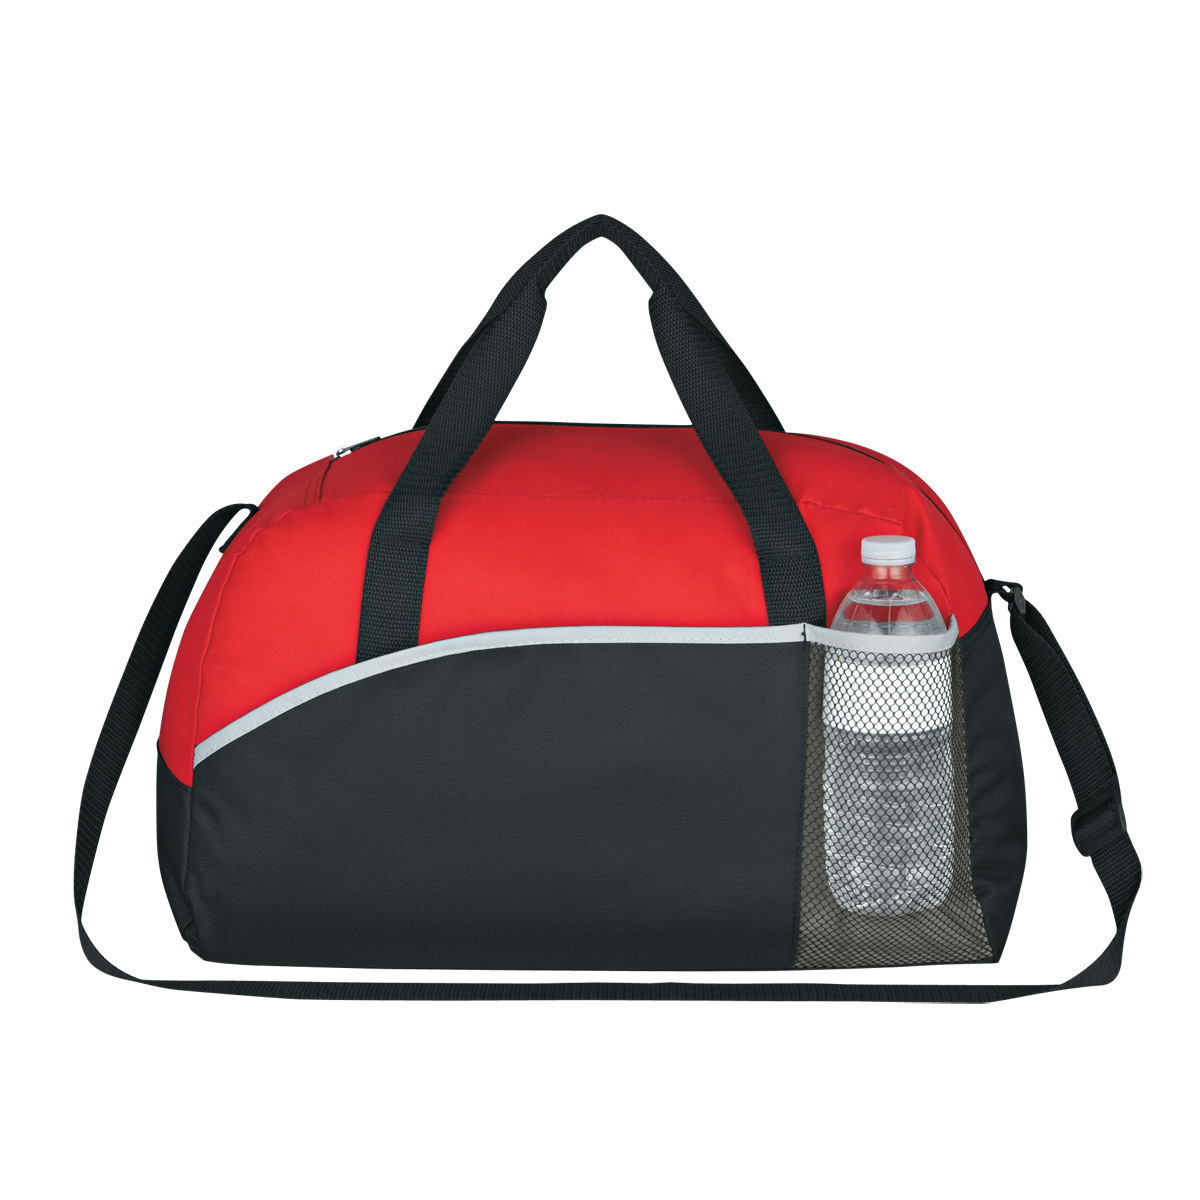 3126_red_waterbottle image